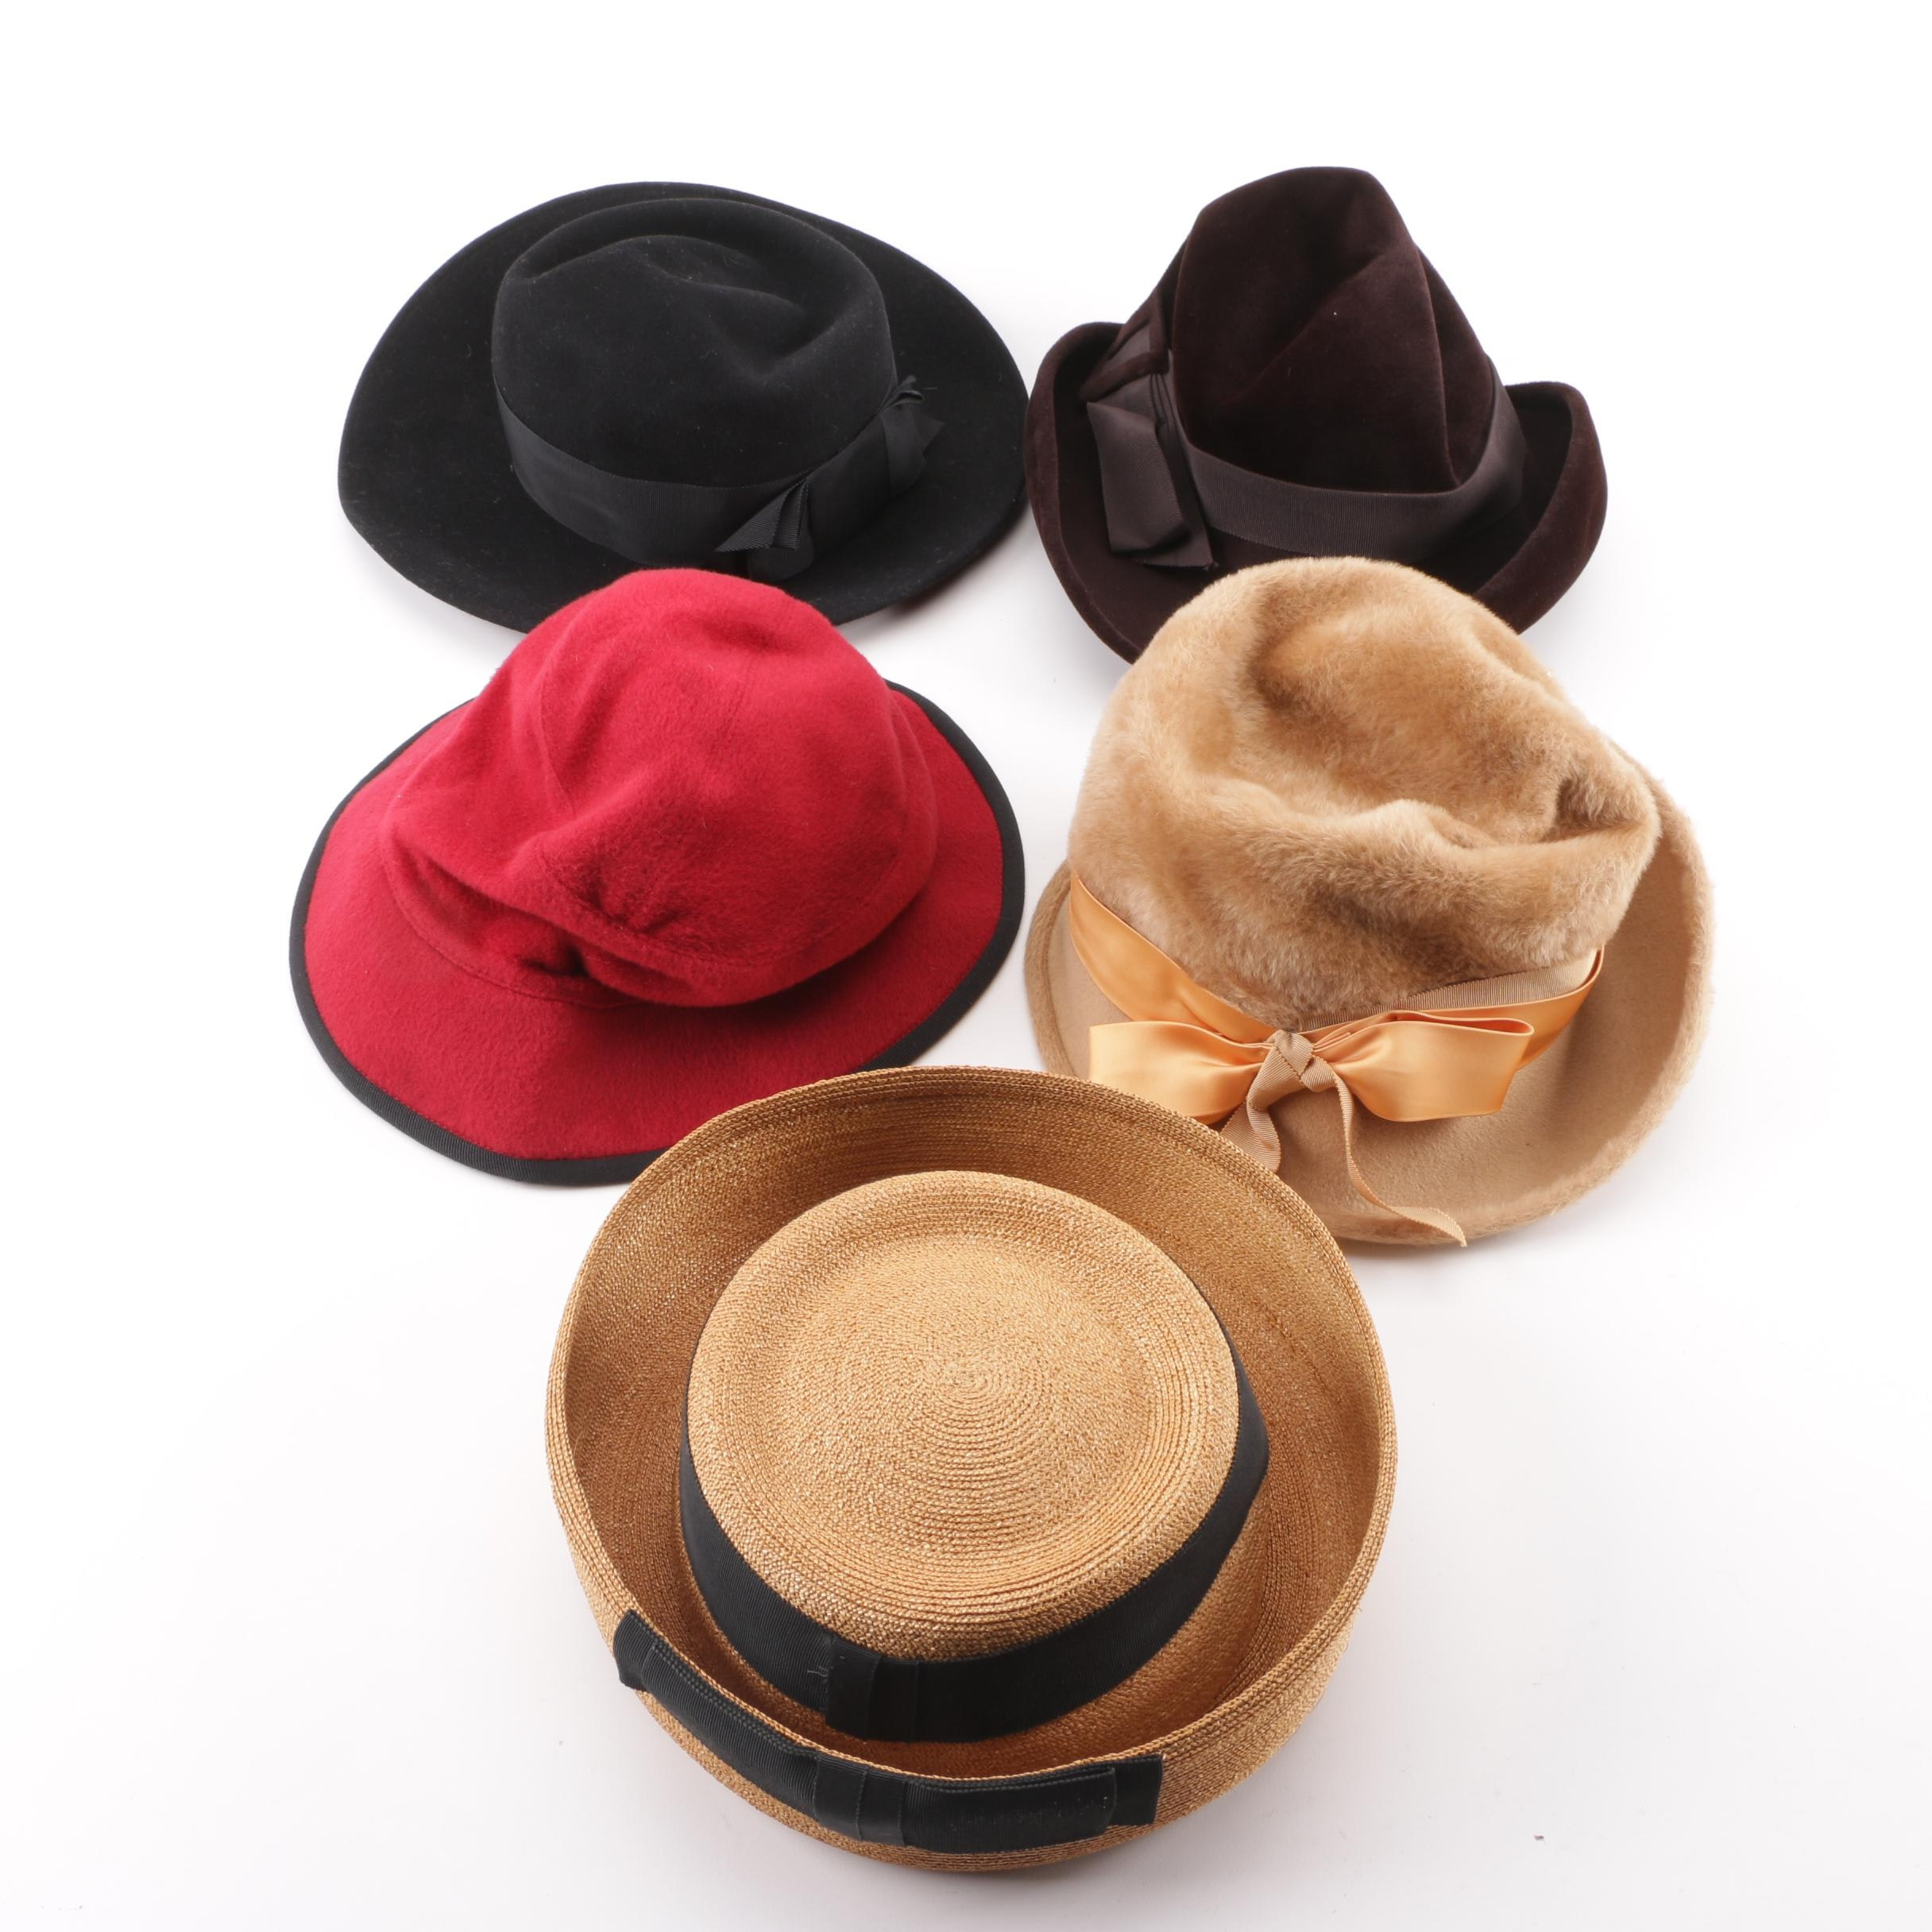 Vintage Hats Including Mr. John, Saks Fifth Avenue, Helen Kaminski, John Andrew